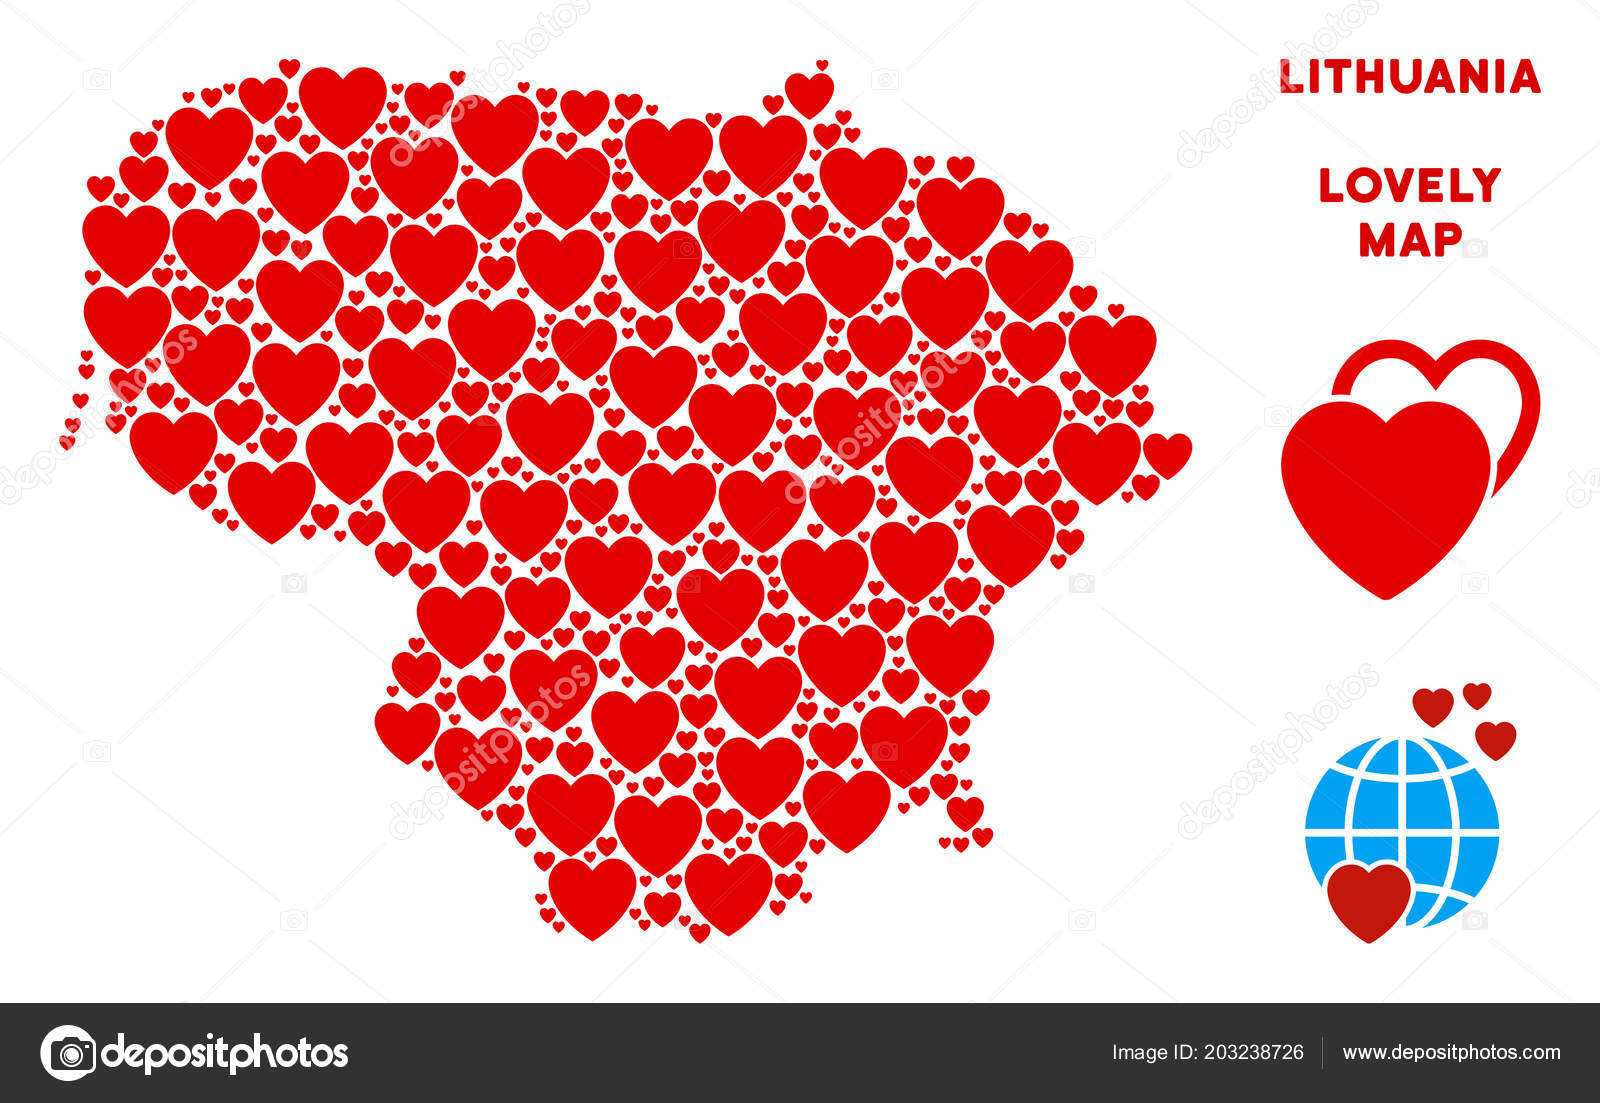 Vector Lovely Lithuania Map Composition Of Hearts — Stock throughout Heart Map Template